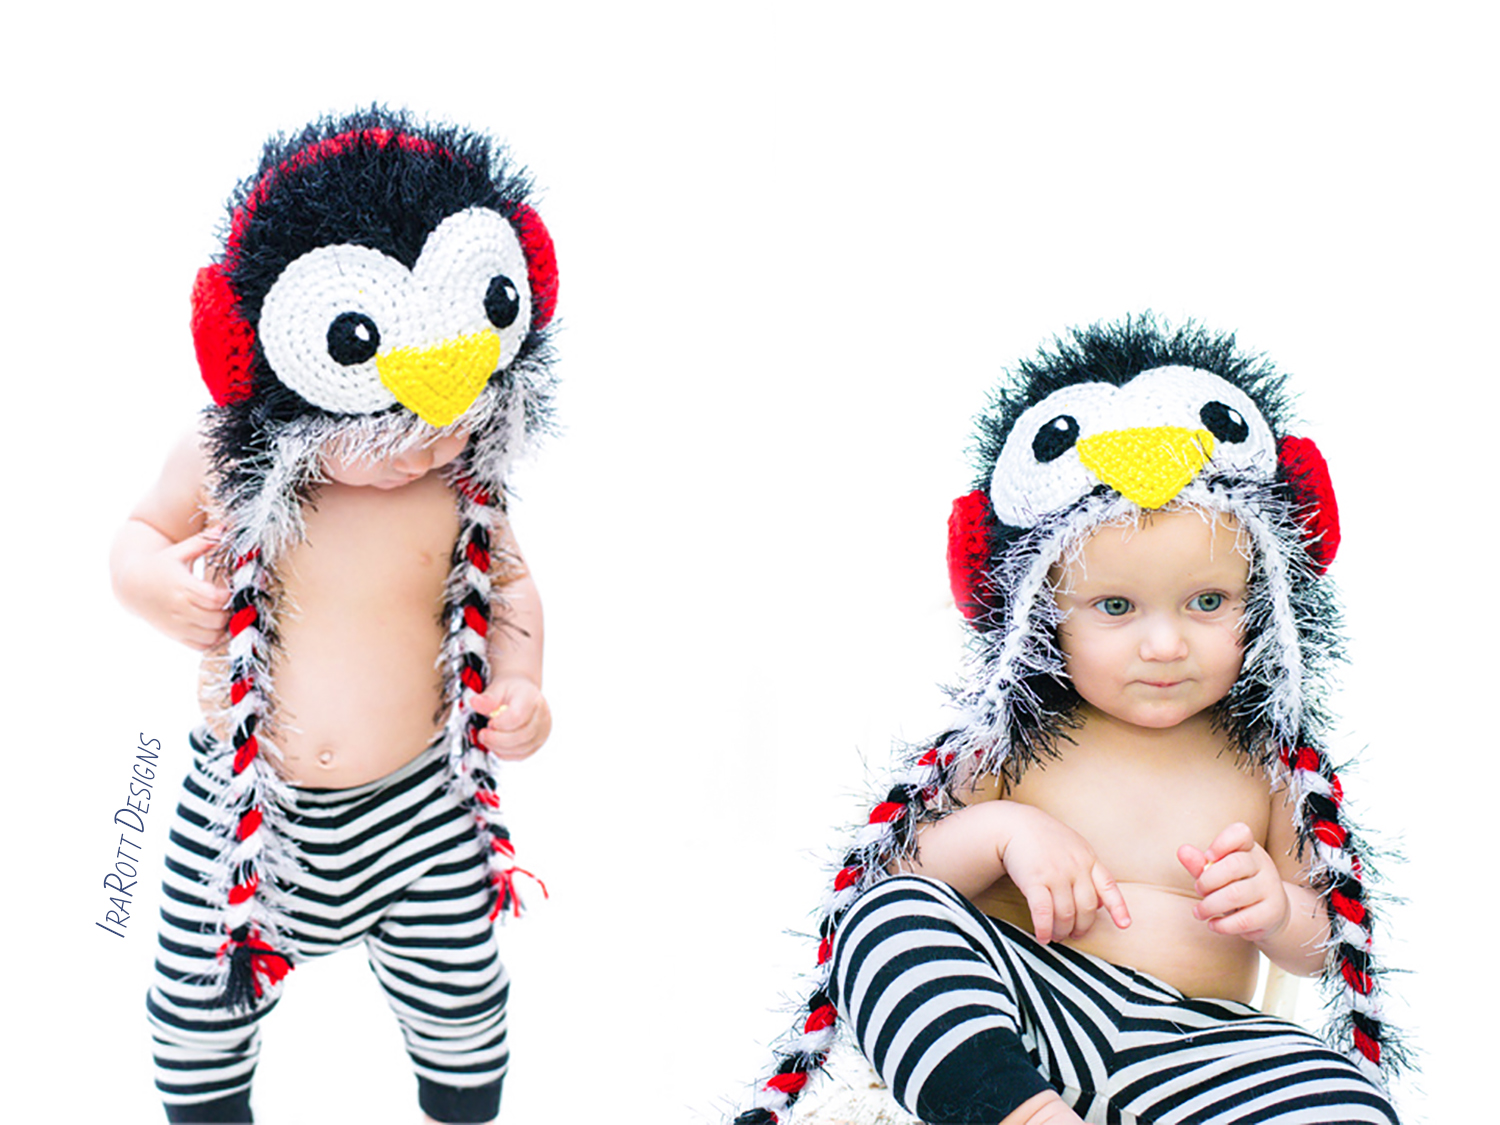 Crochet pattern PDF for making an adorable penguin animal hat with earmuffs